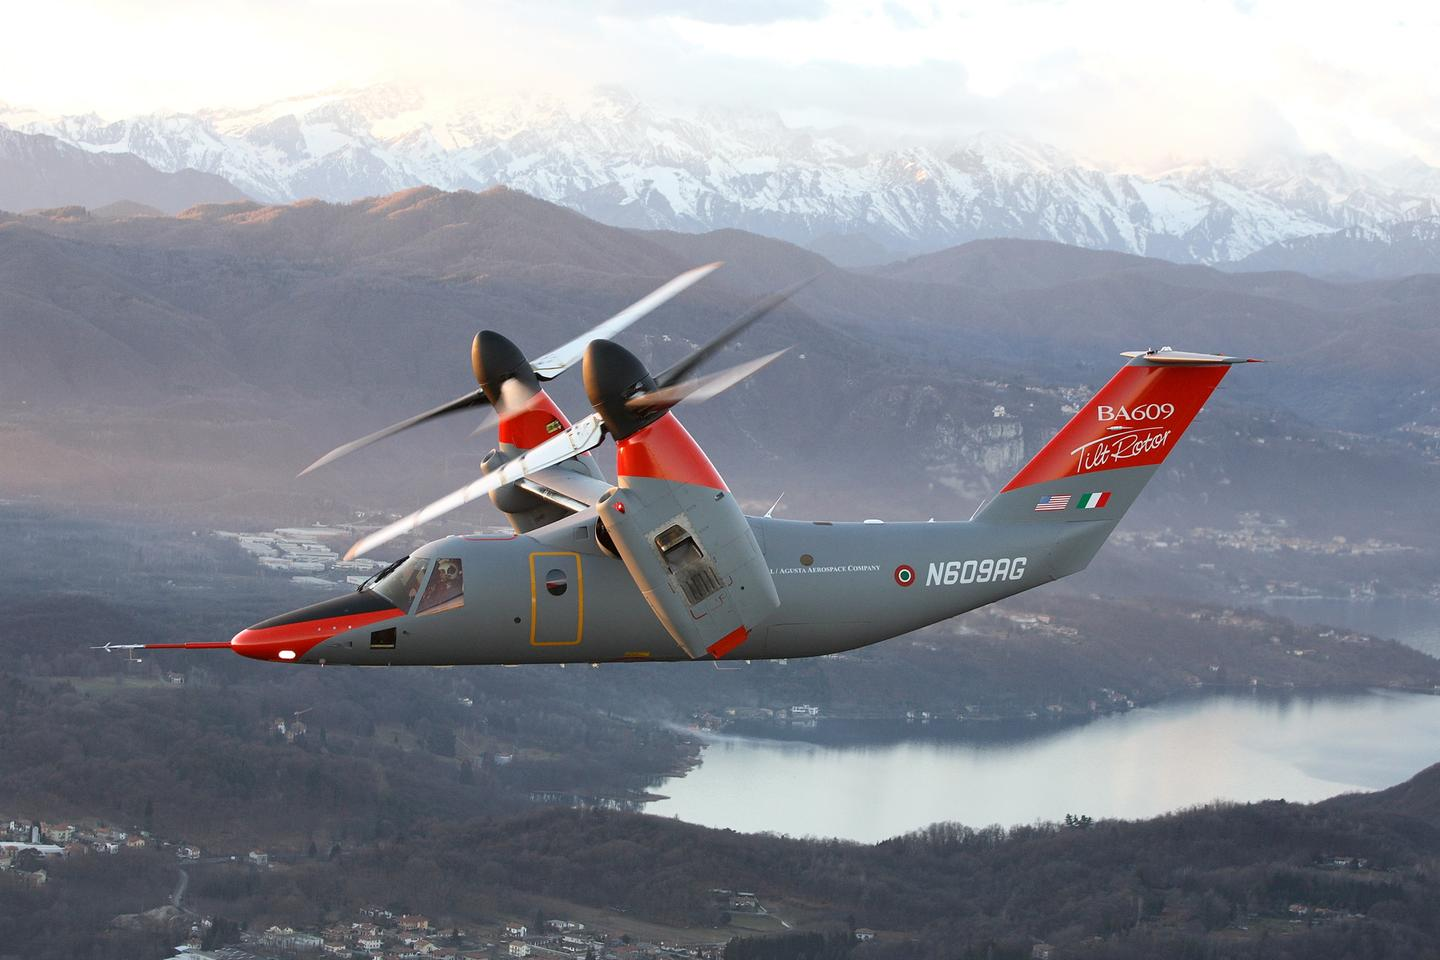 The AgustaWestland AW609 tiltrotor aircraft is aiming for FAA certification in 2016